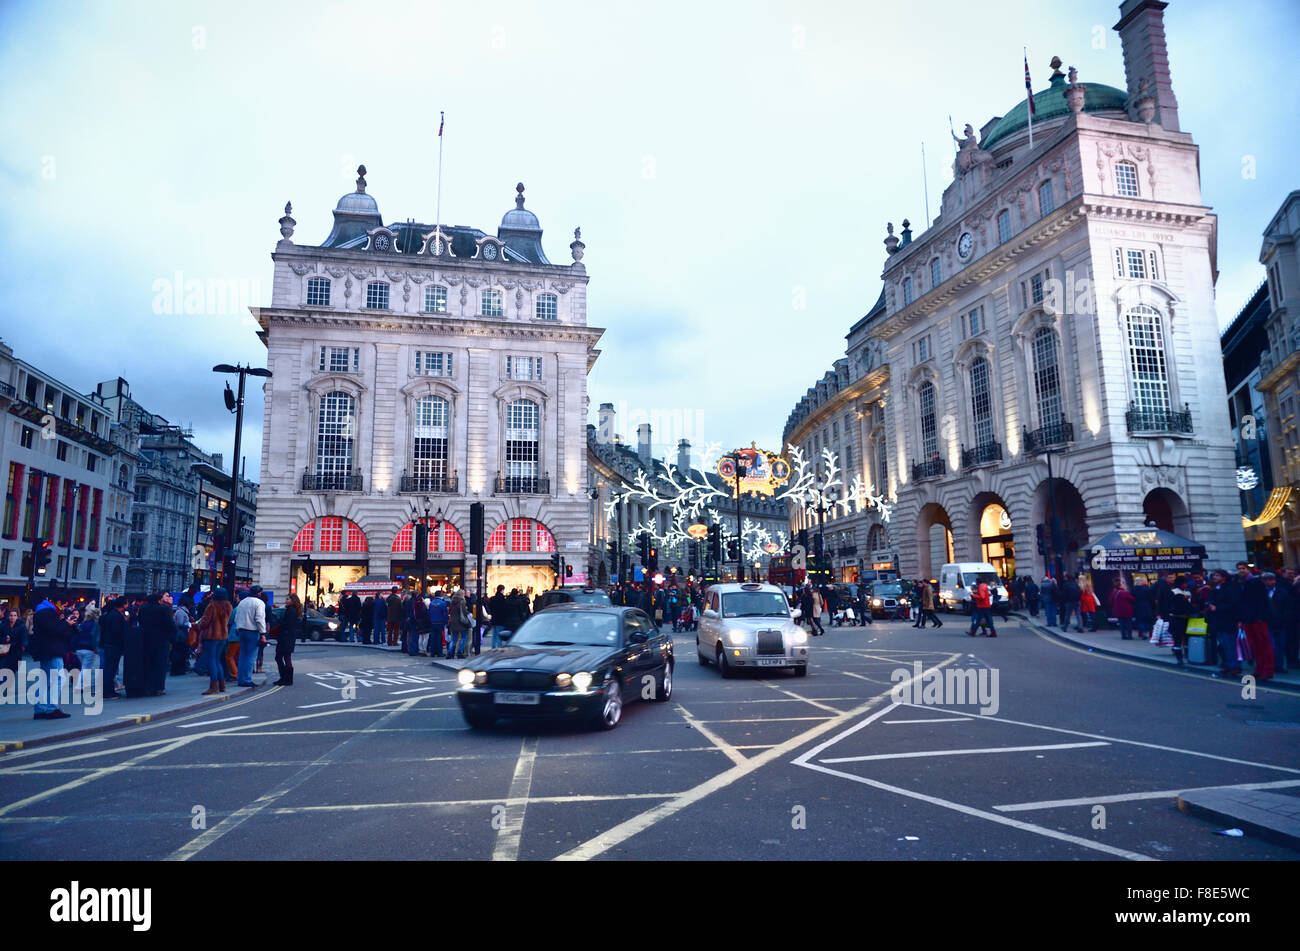 People and traffic in Picadilly Circus, Famous public space in London's West End. London, England, United Kingdom - Stock Image